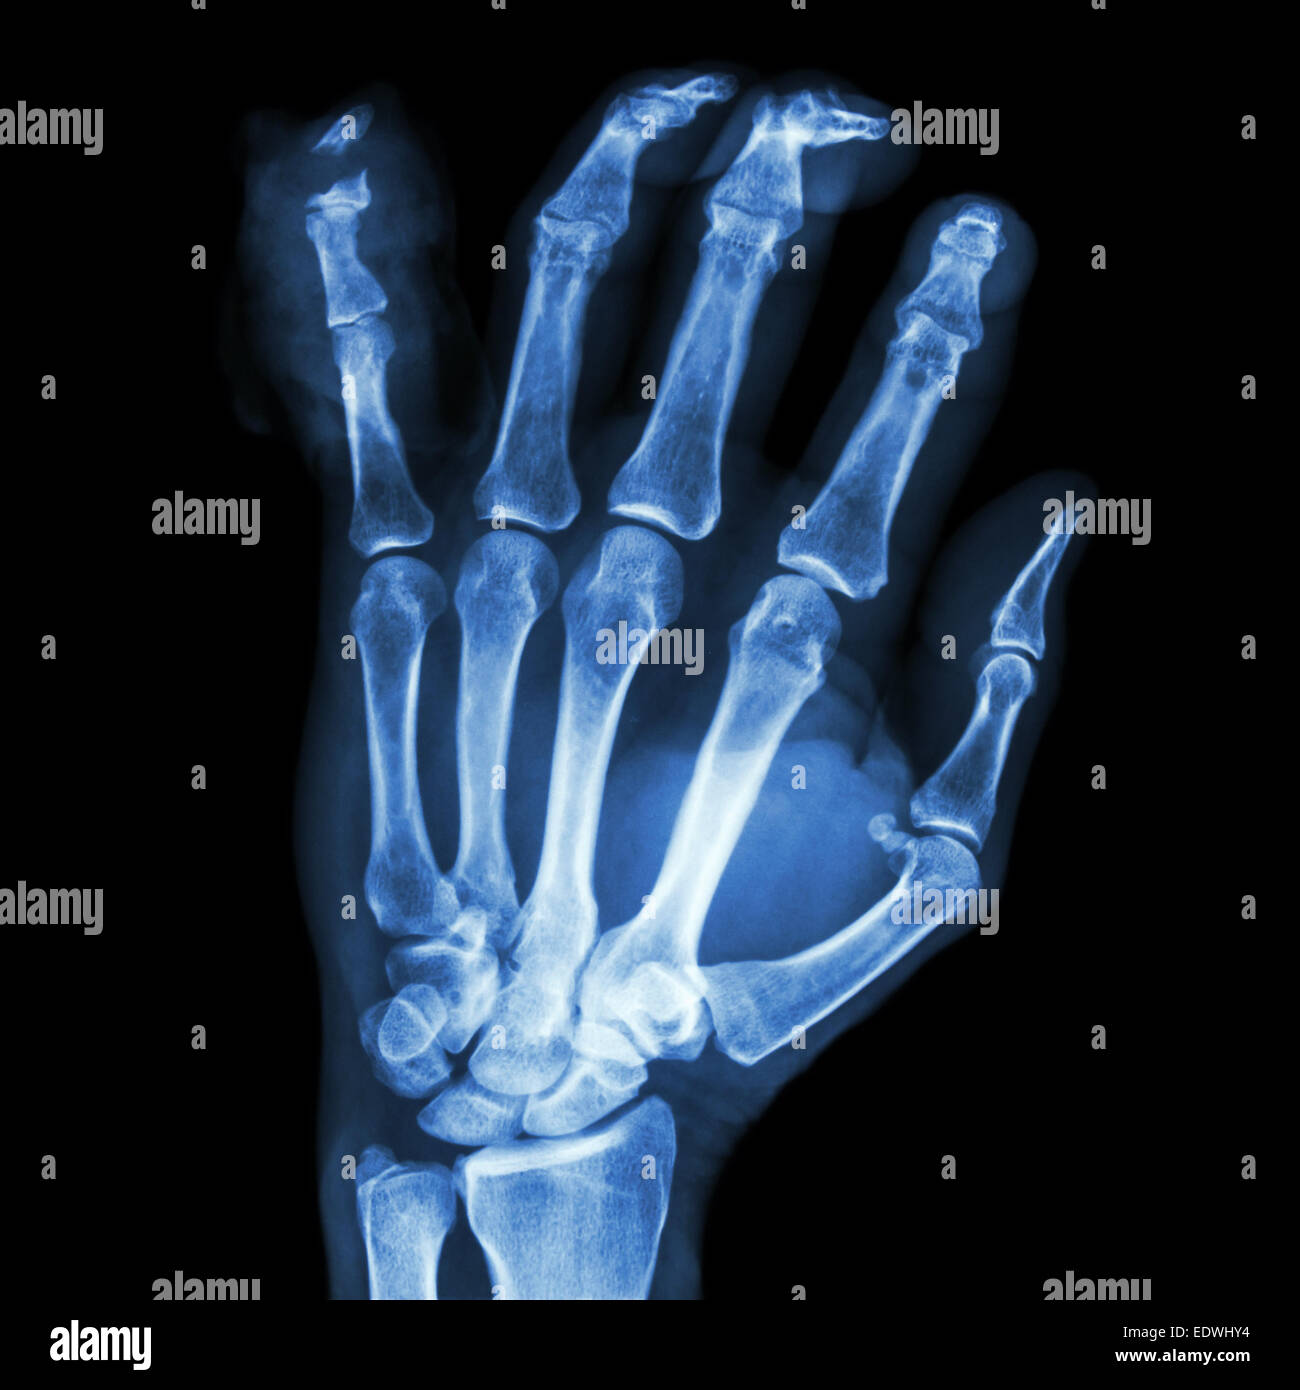 Film X Ray Hand Fracture Show Stock Photos & Film X Ray Hand ...